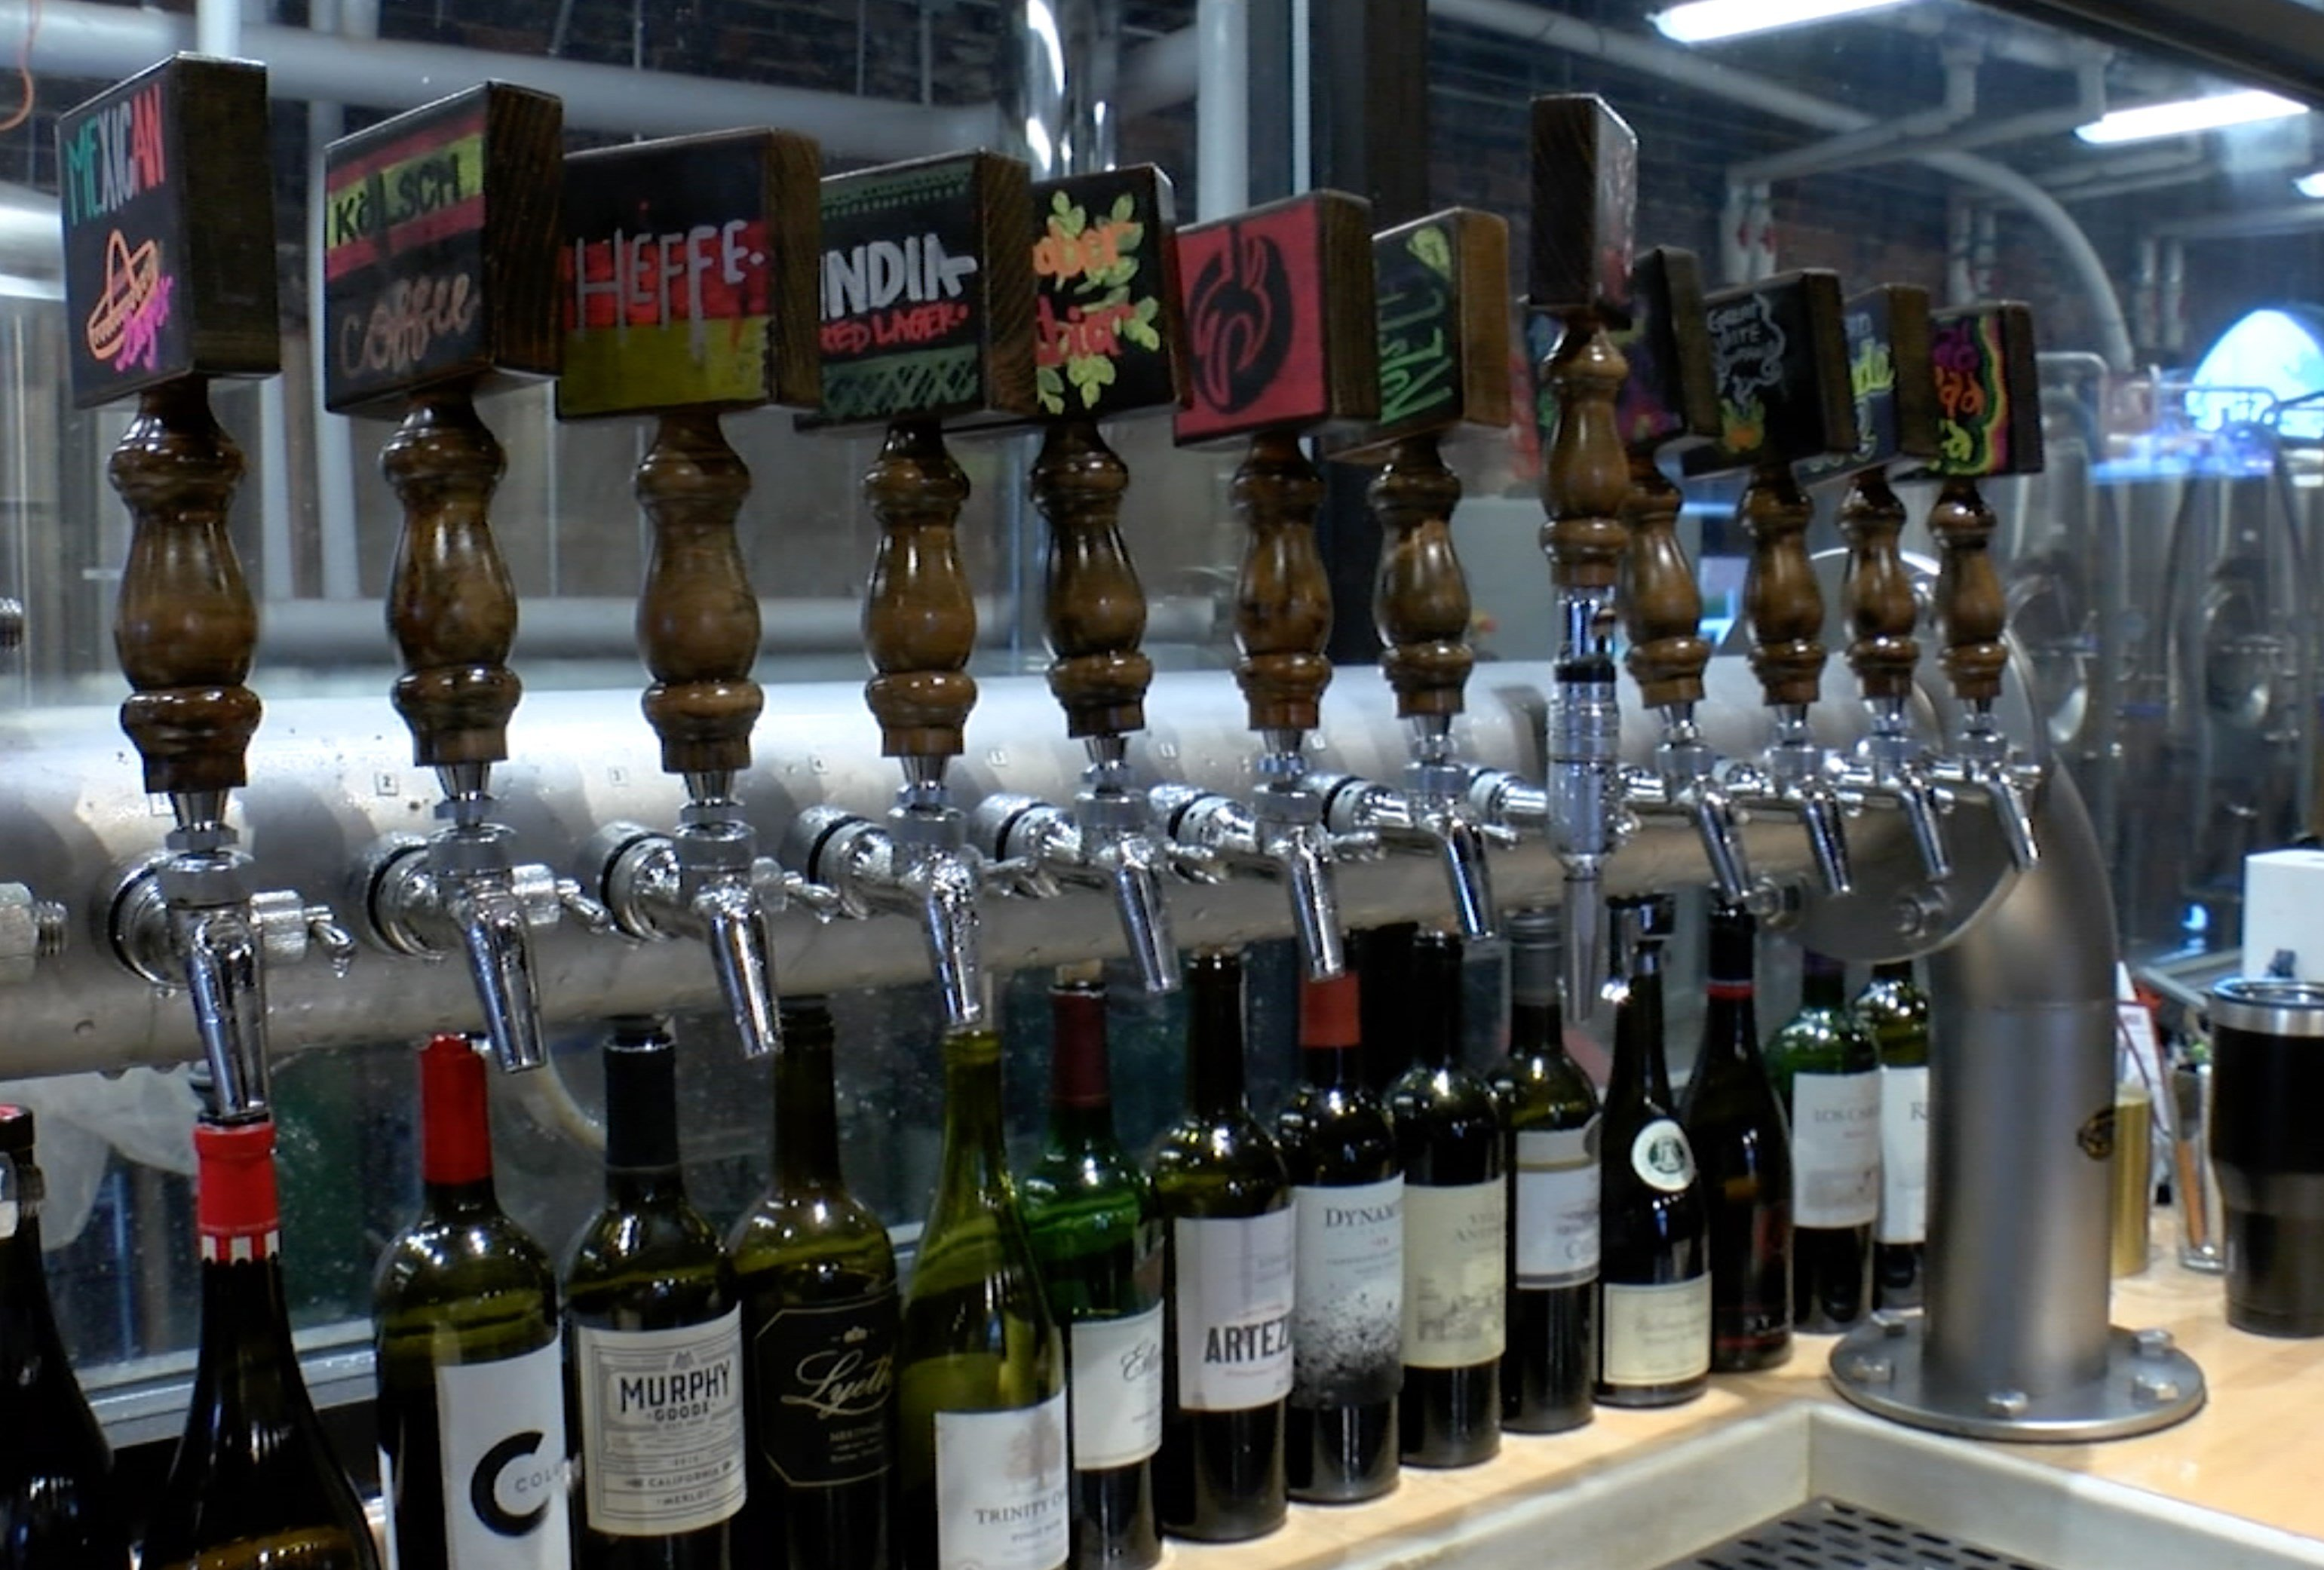 Some of the local beers available at Twisted Spur Brewery are displayed on the brew line.